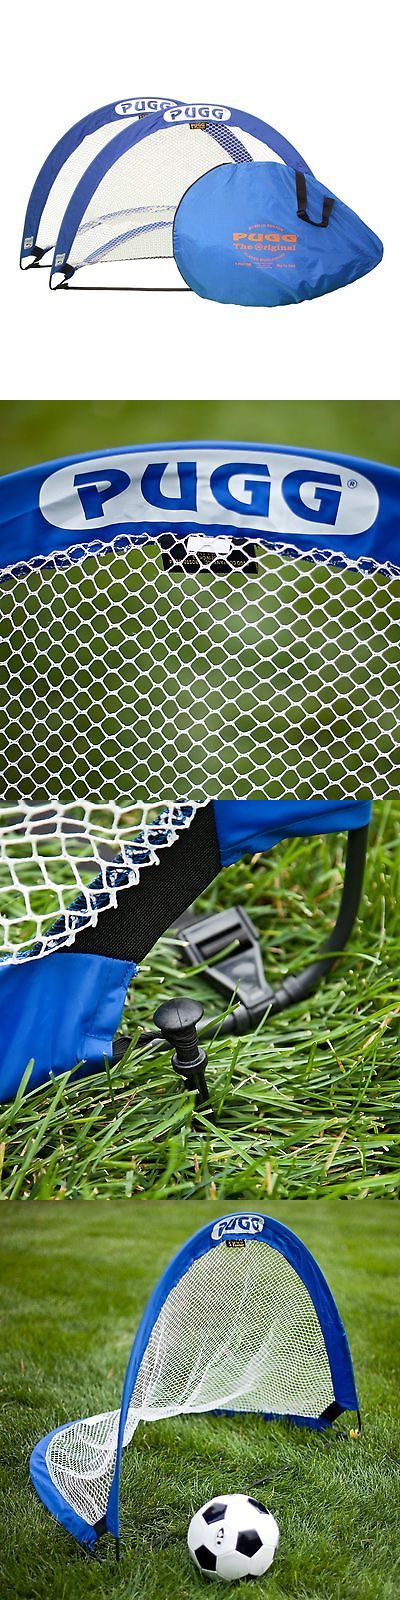 Goals and Nets 159180: 4 Ft. Pugg Soccer Goals, Pair Of Goals -> BUY IT NOW ONLY: $61.5 on eBay!